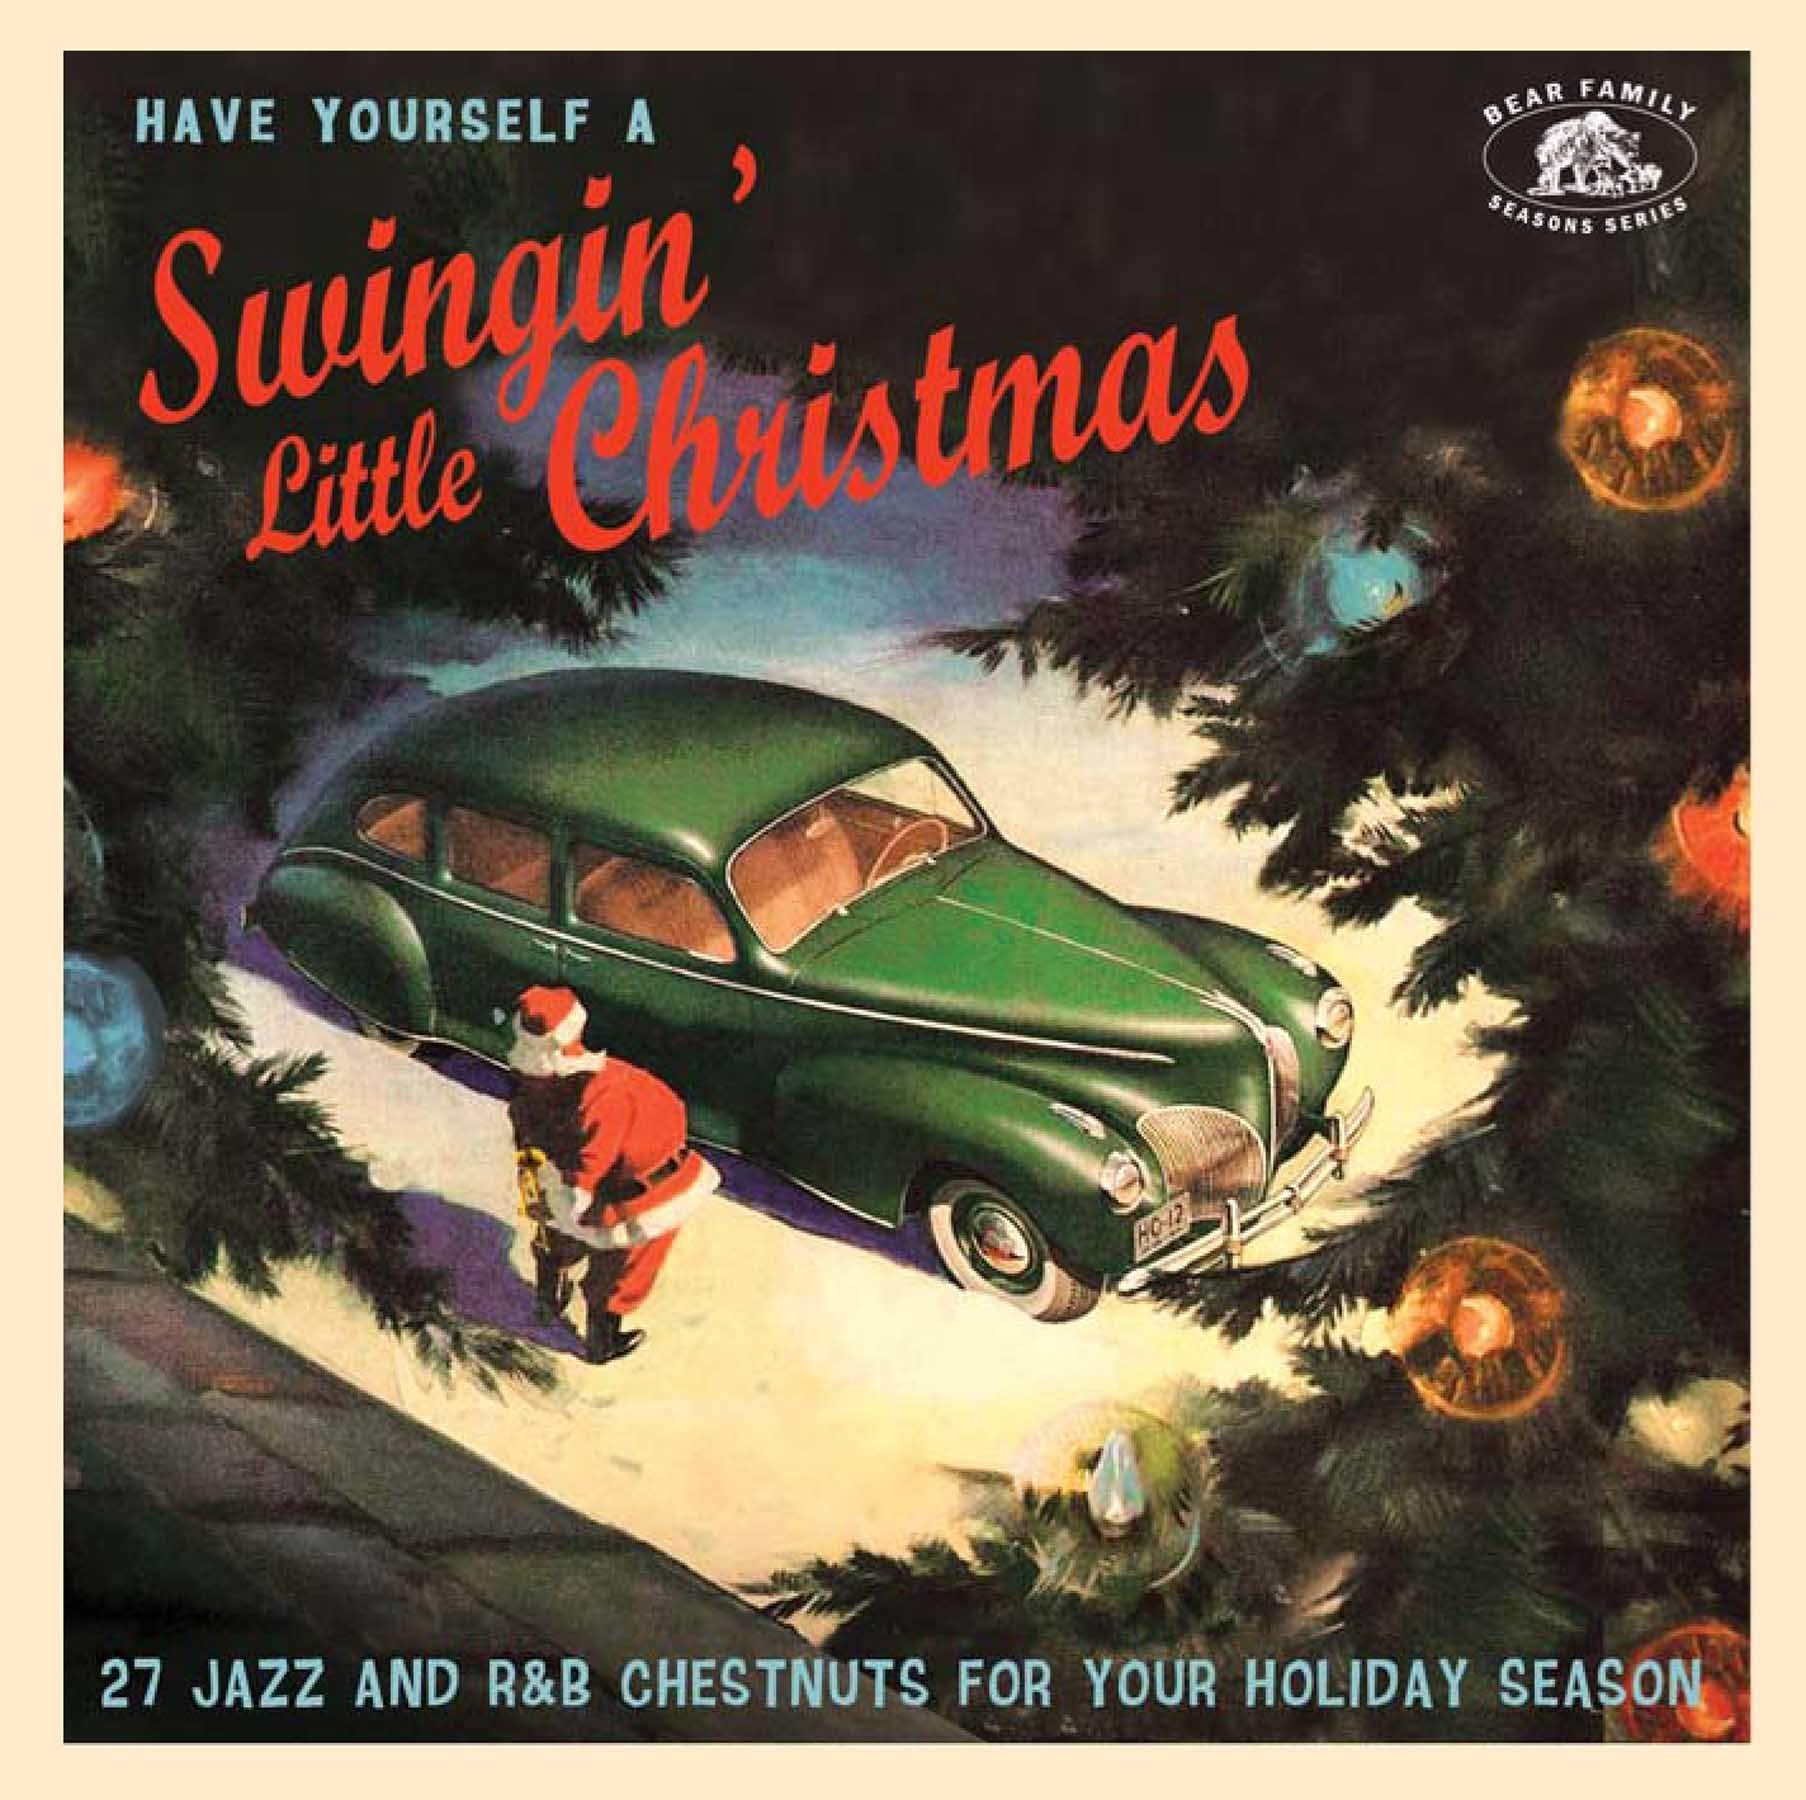 Have Yourself A Swinging' Little Christmas (Various Artists) by Various - Season's Greetings